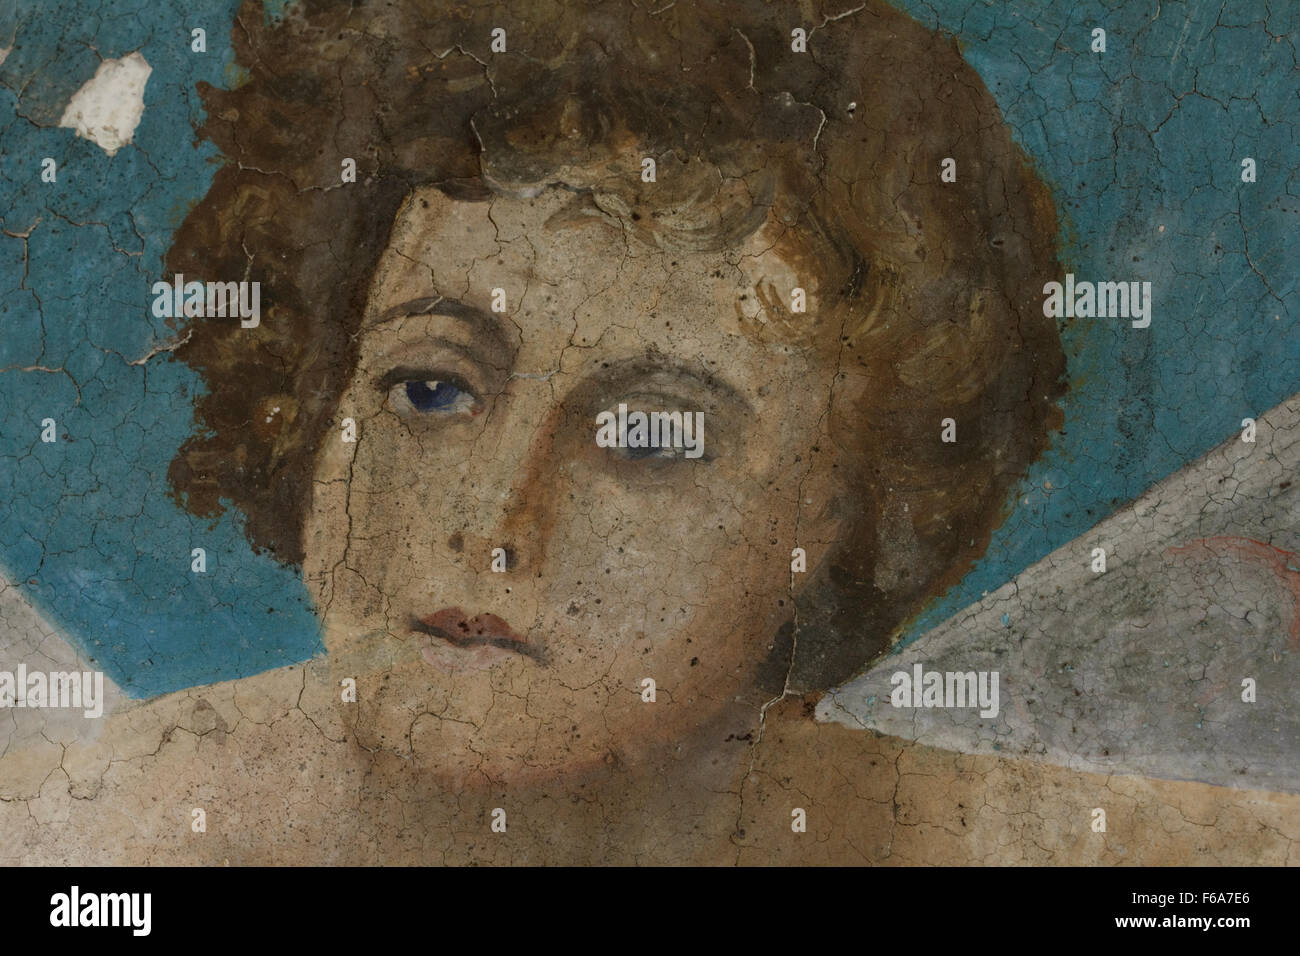 Closeup of the decrepit angelic character face part of the wallpainting entitled 'Artemis' by M. Papamalis. - Stock Image